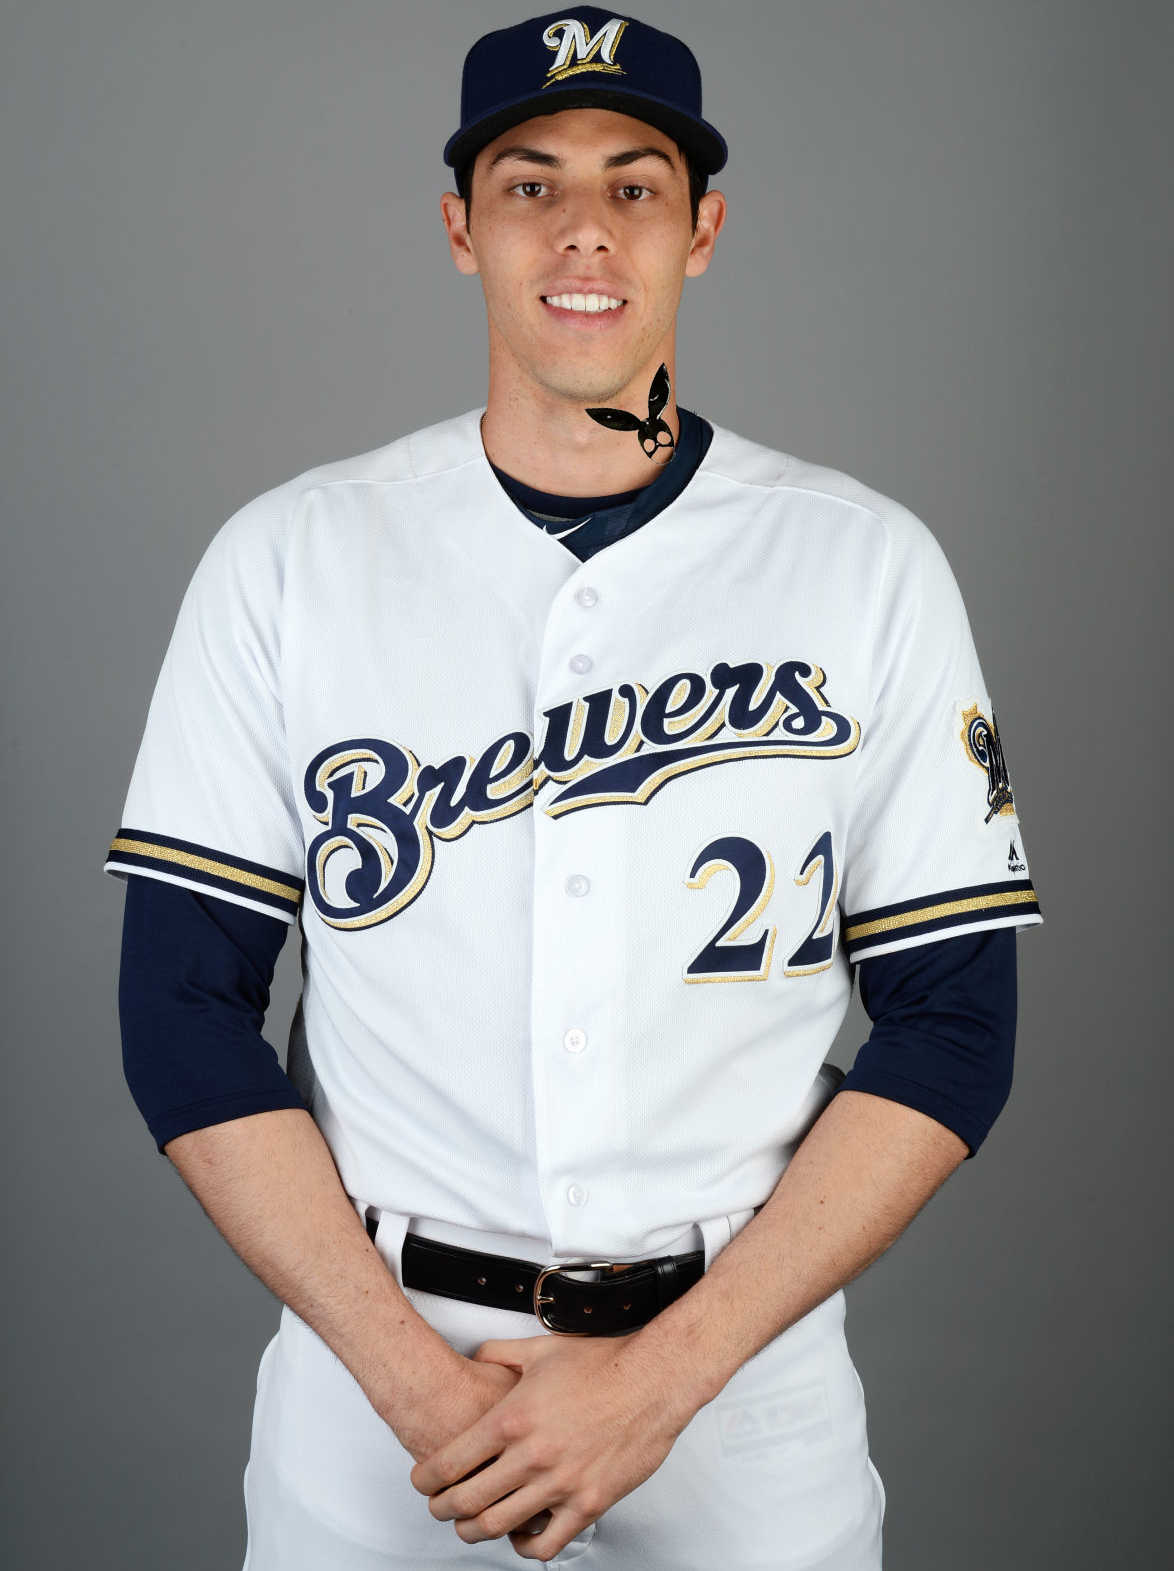 Pete Davidson sporting a fresh Brewers jersey. A New Jersey. Not a New York.